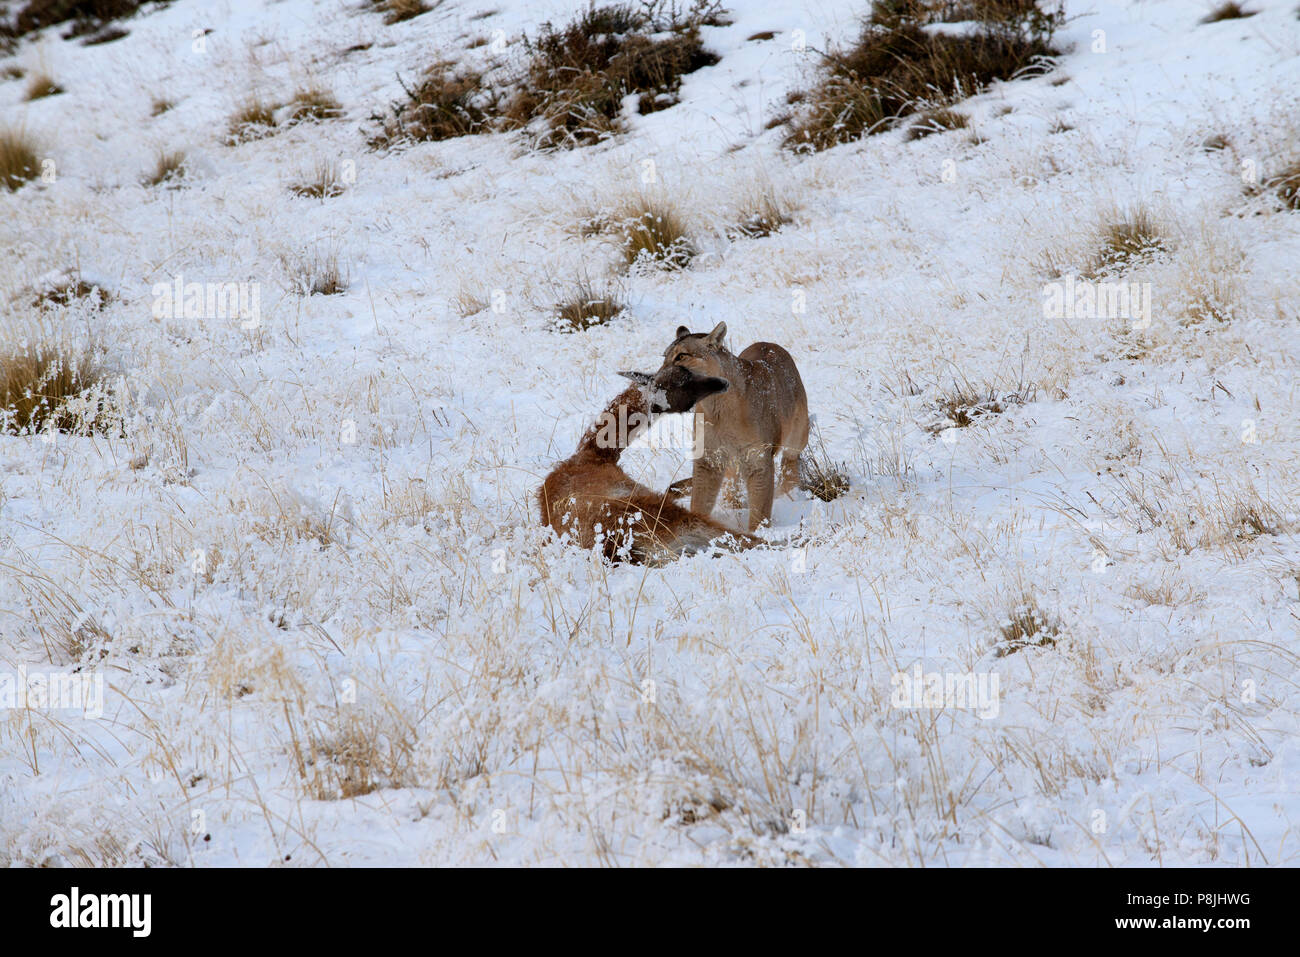 9fe948f8792d Adult female Patagonian Puma standing in snow with a young Guanaco clamped  firmly between it s jaws.